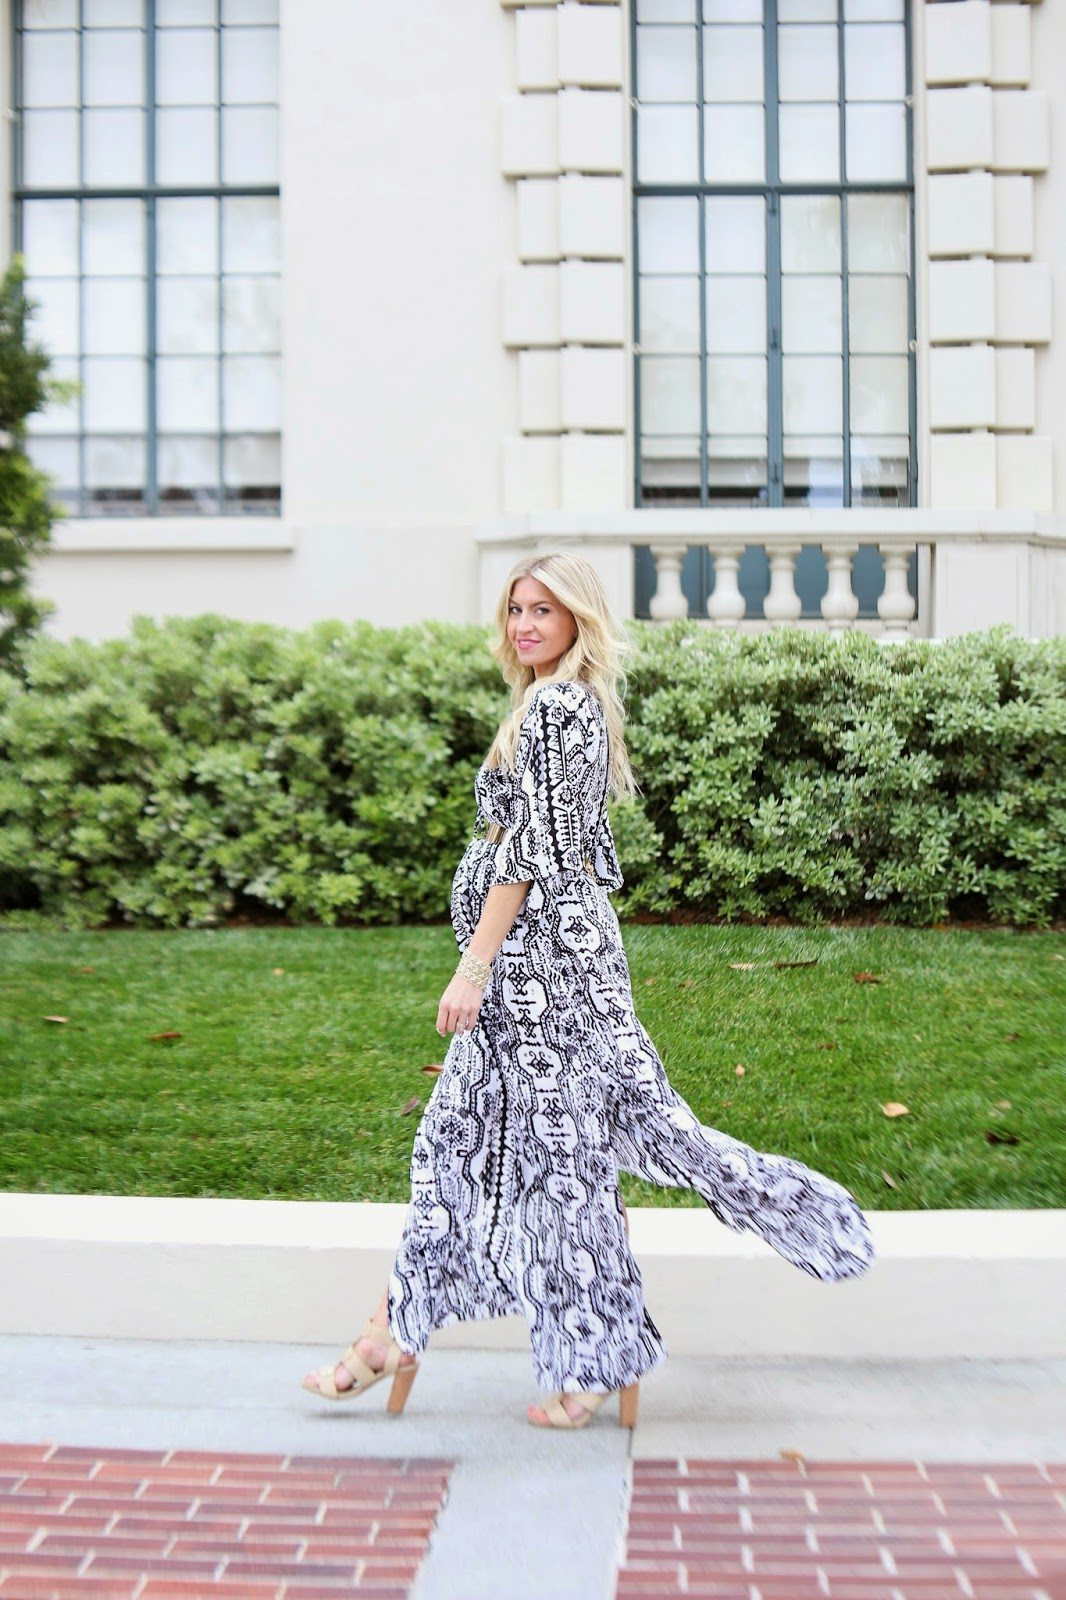 CAFTAN DREAMS: RACHEL ZOE LAUNCH PARTY RECAP